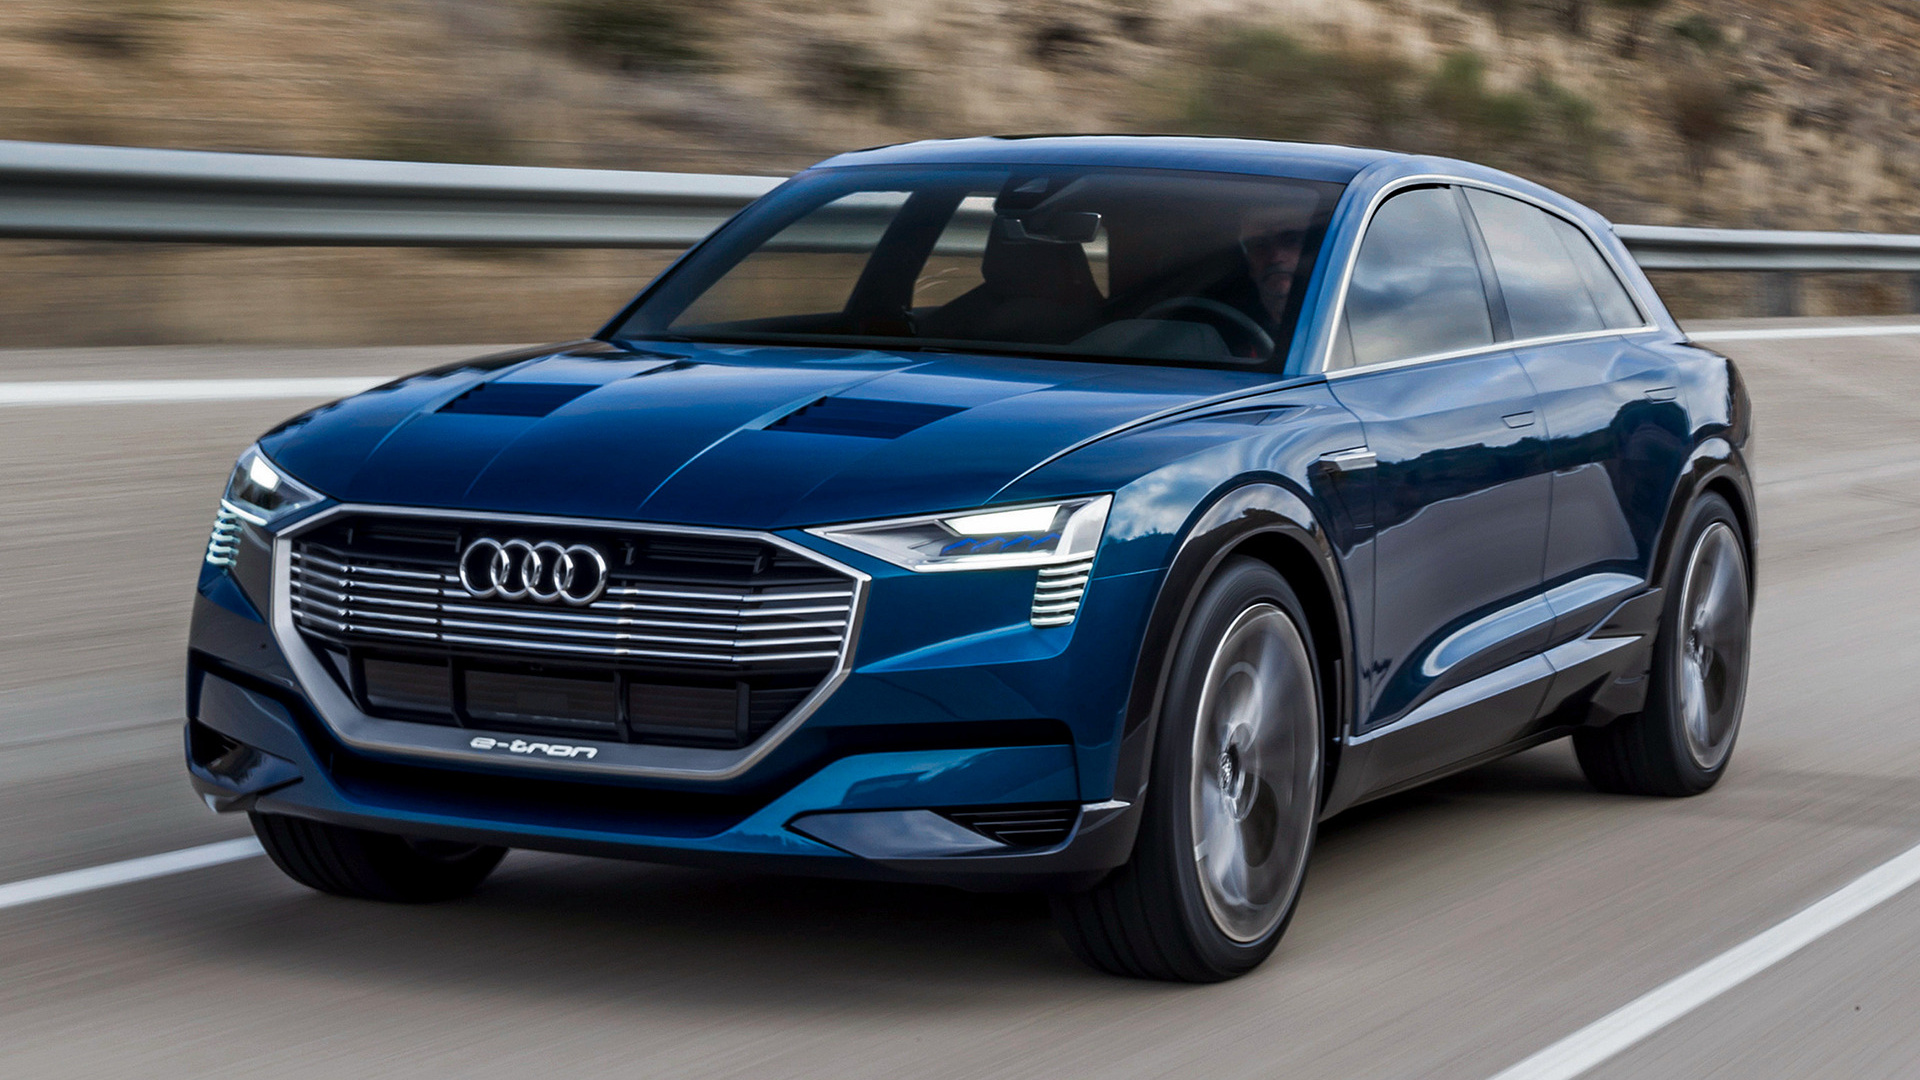 Audi etron quattro concept 2015 Wallpapers and HD Images